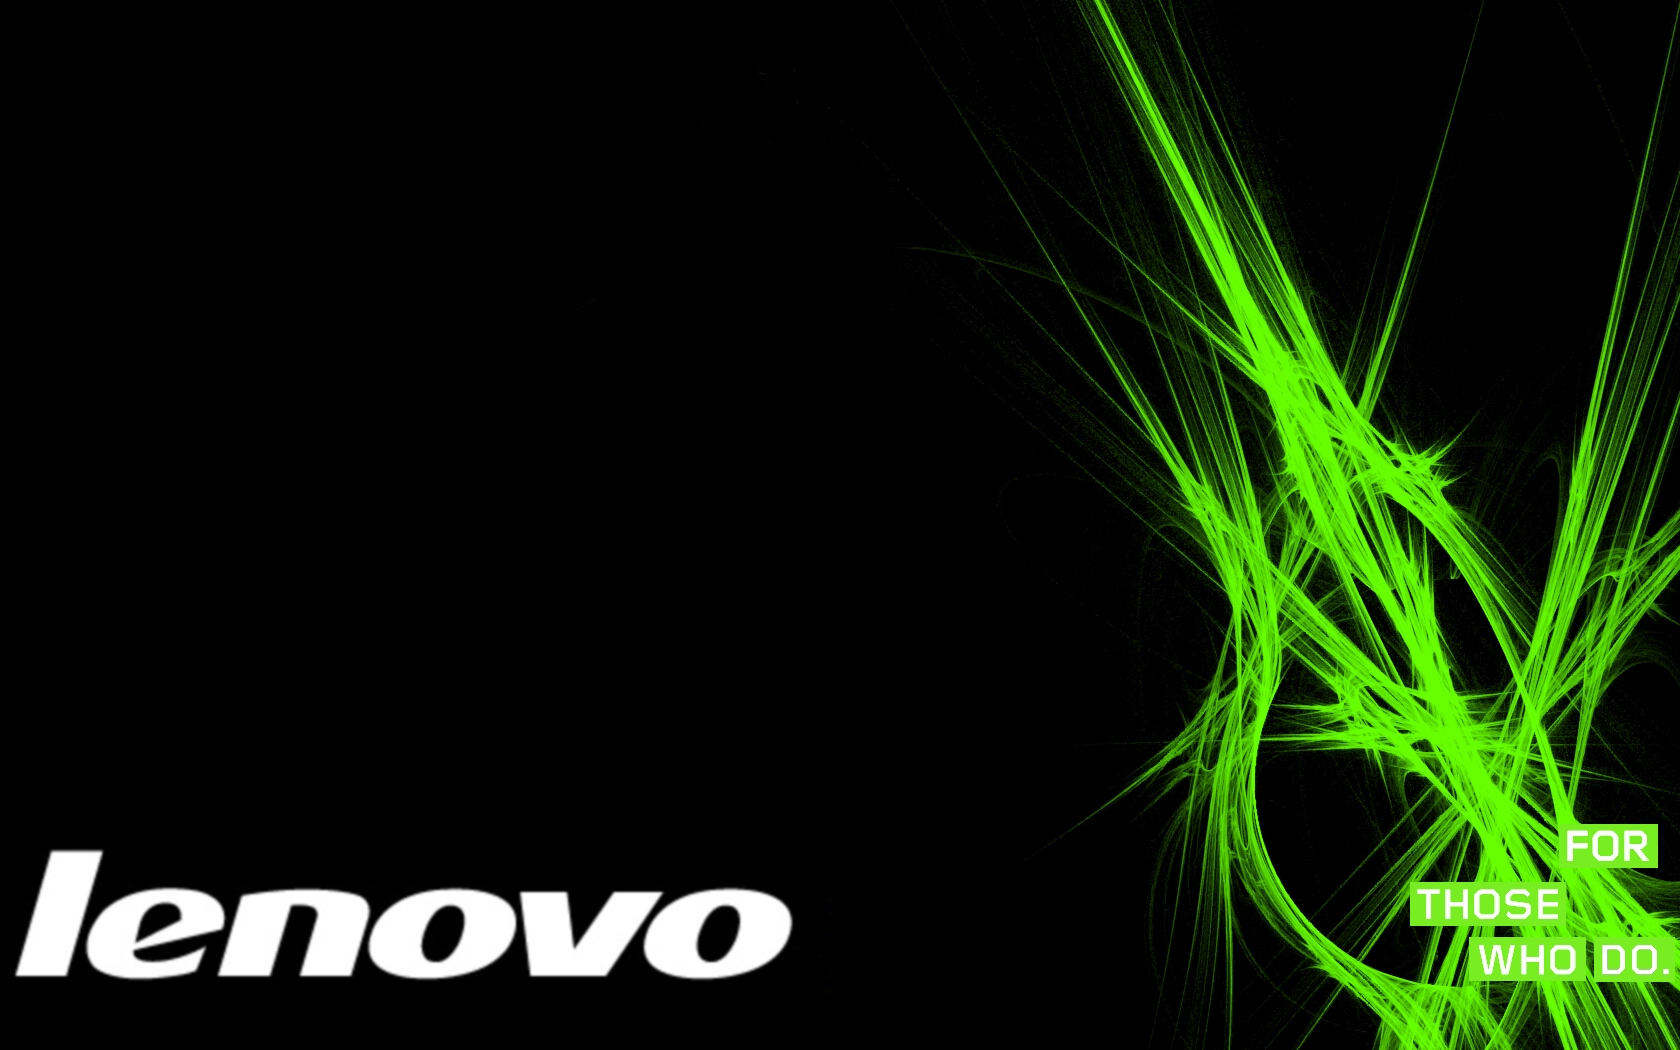 Lenovo Wallpaper Theme: ThinkPad Wallpapers 1600x900